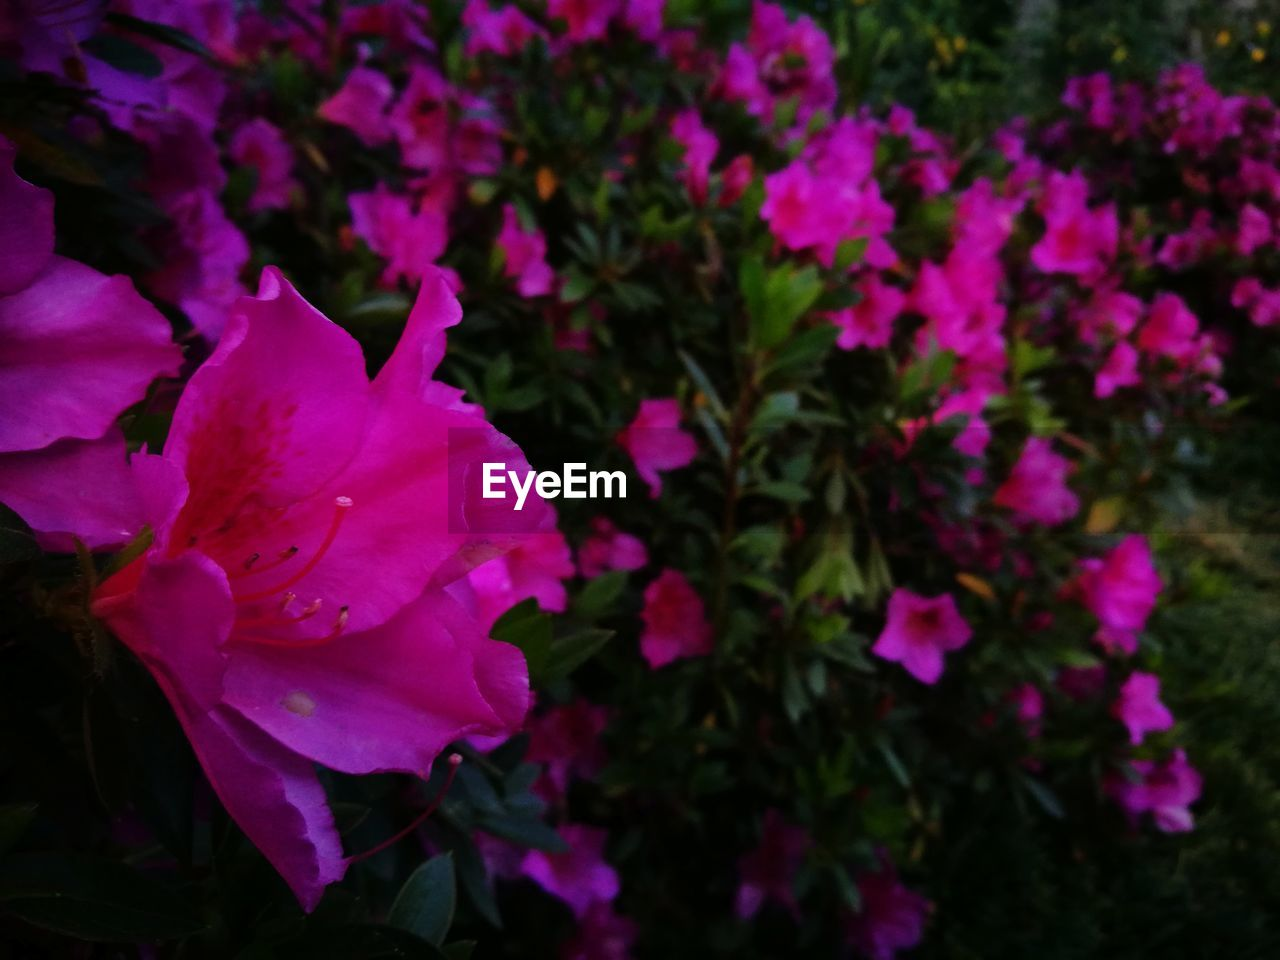 flower, petal, beauty in nature, fragility, nature, flower head, pink color, growth, purple, no people, plant, freshness, blooming, night, close-up, outdoors, springtime, petunia, bougainvillea, periwinkle